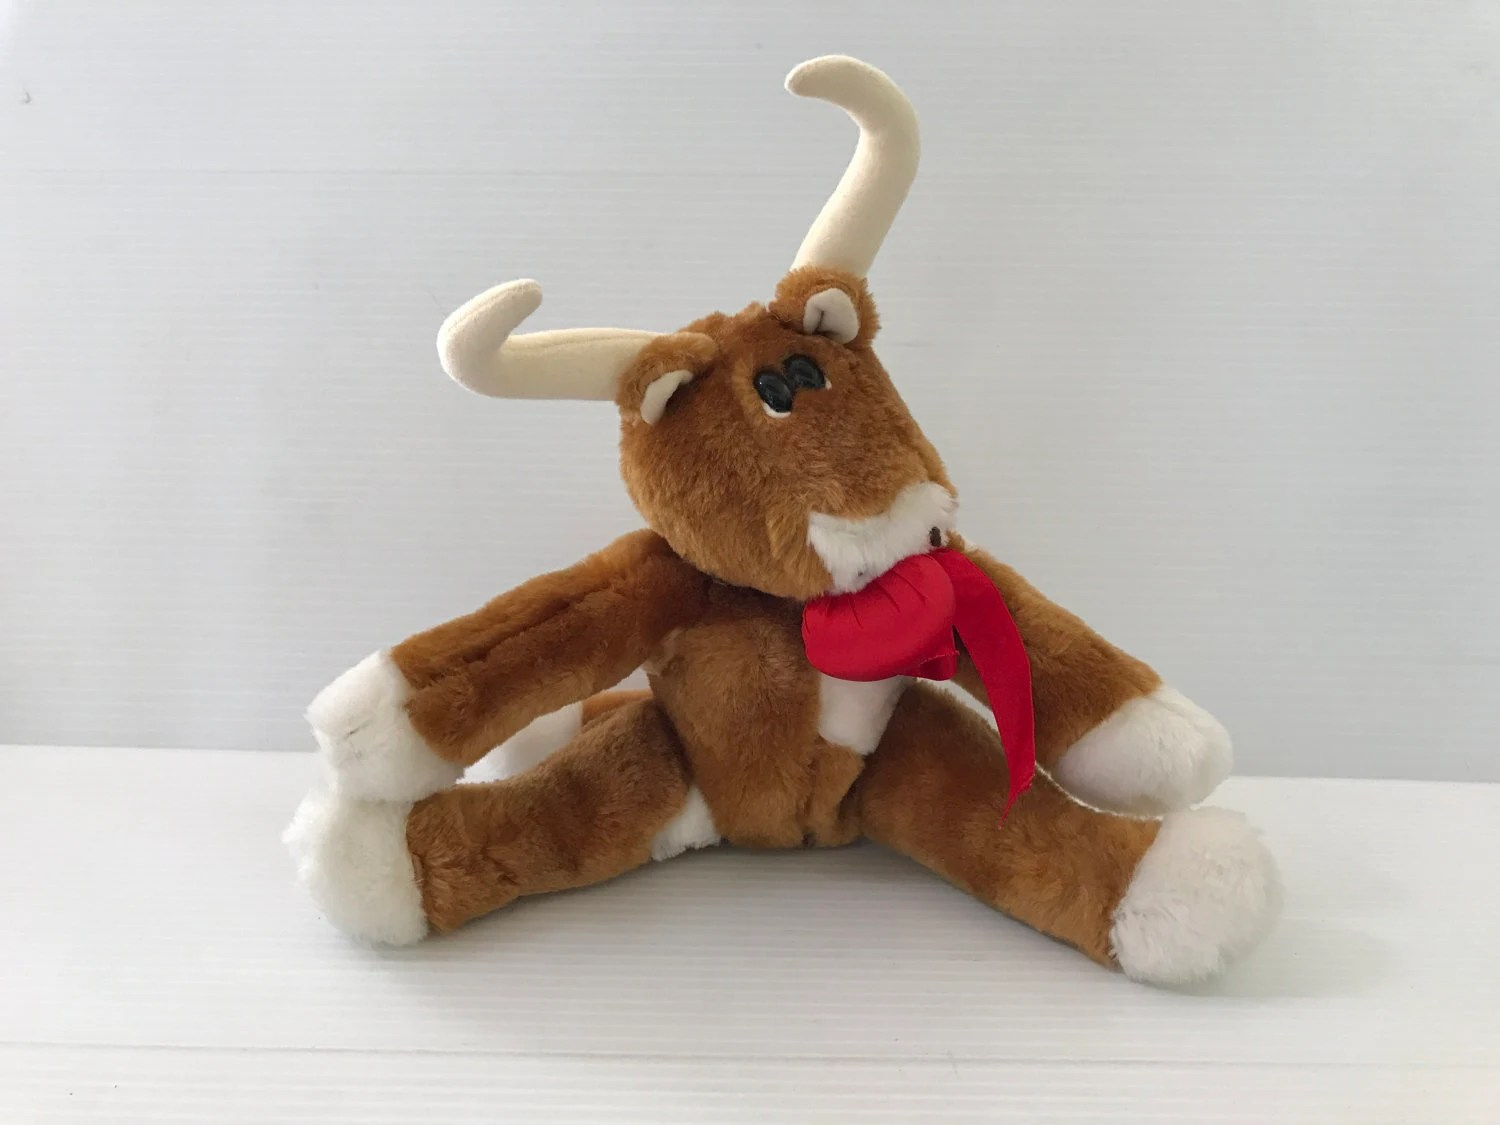 Kamar Vintage Stuffed Longhorn Vintage Plush Longhorn Kamar Stuffed Longhorn Vintage Plush Cow Vintage Stuffed Bull Retro Plush Cow Gift For Him